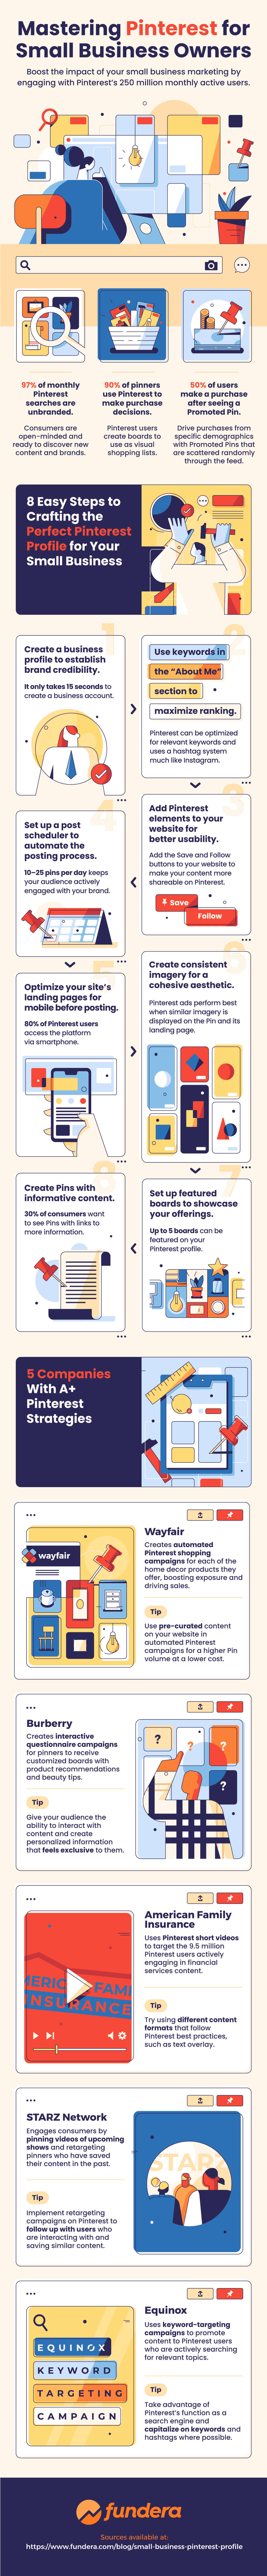 Infographic outlines how to use Pinterest for business